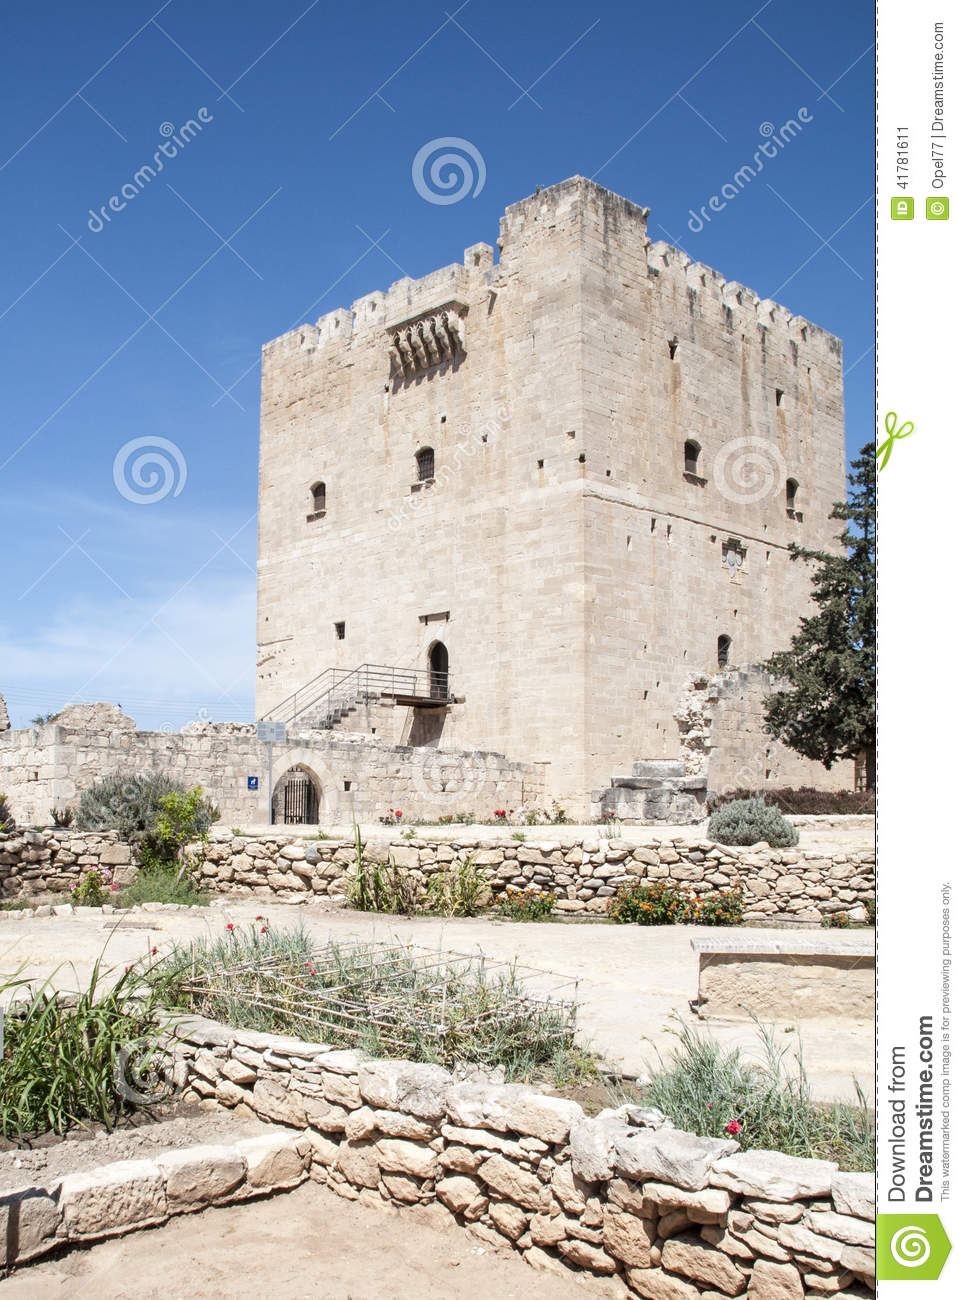 Mediterranean castle stock photo image 41781611 for Sun castle